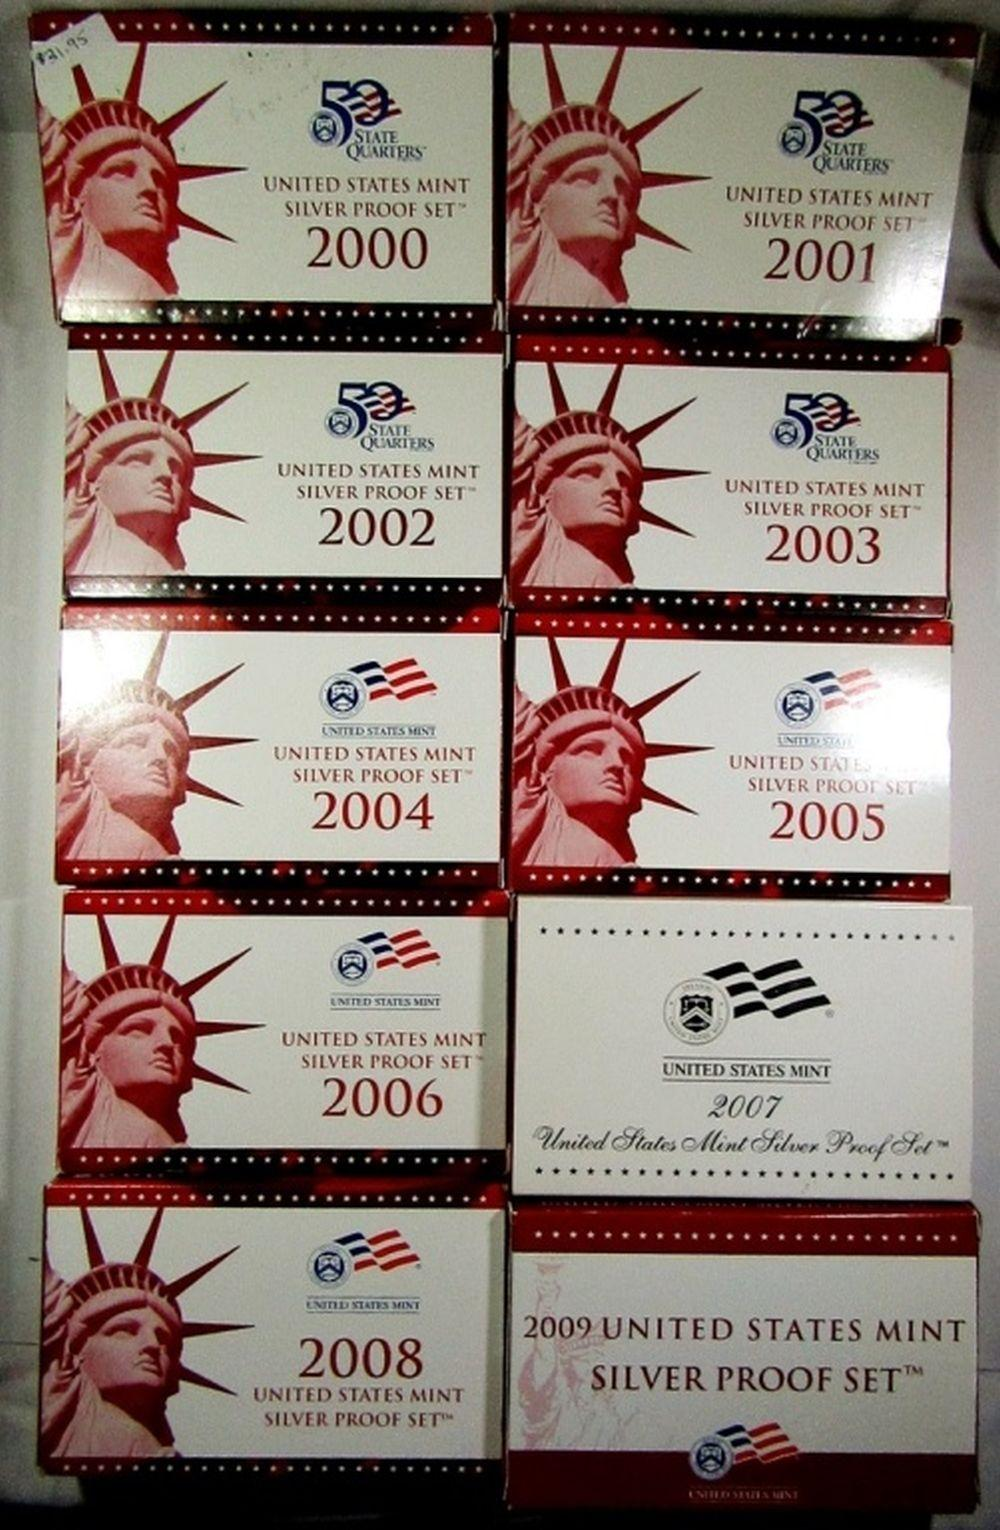 10 US SILVER PROOF SETS 2000-'09